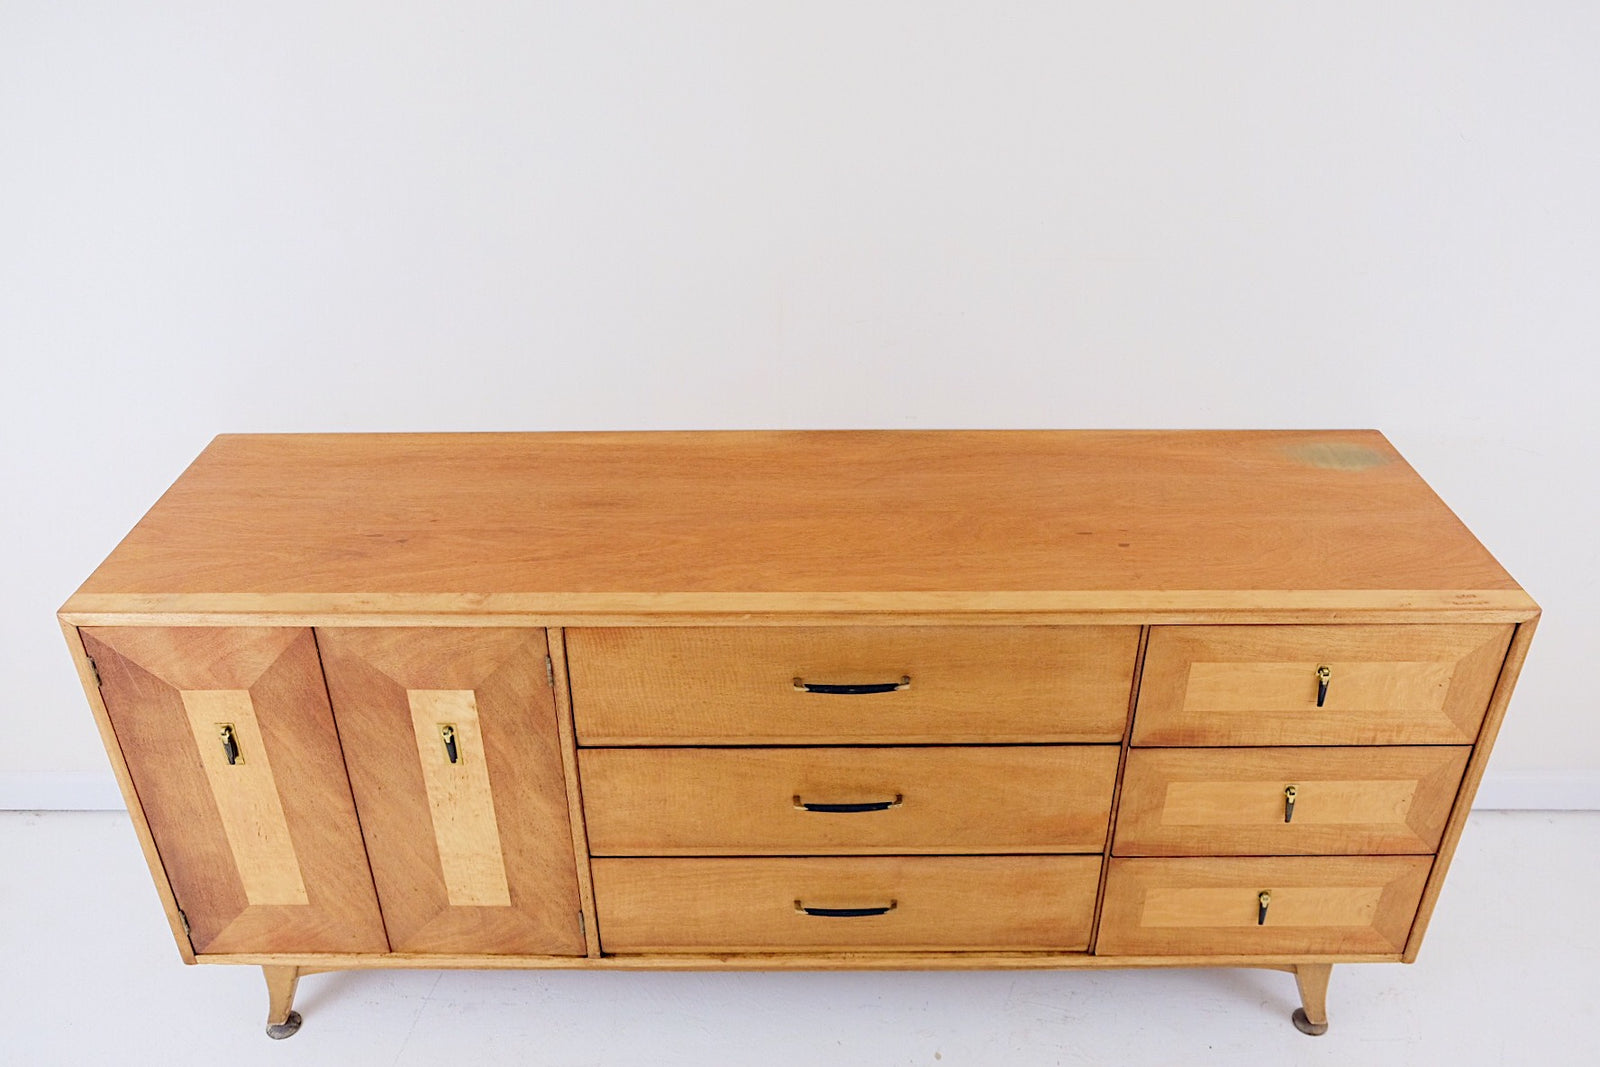 Mid Century Modern Sideboard Lowboy Dresser Nine Drawers Two Tone Ebony Handles and Pull Tabs